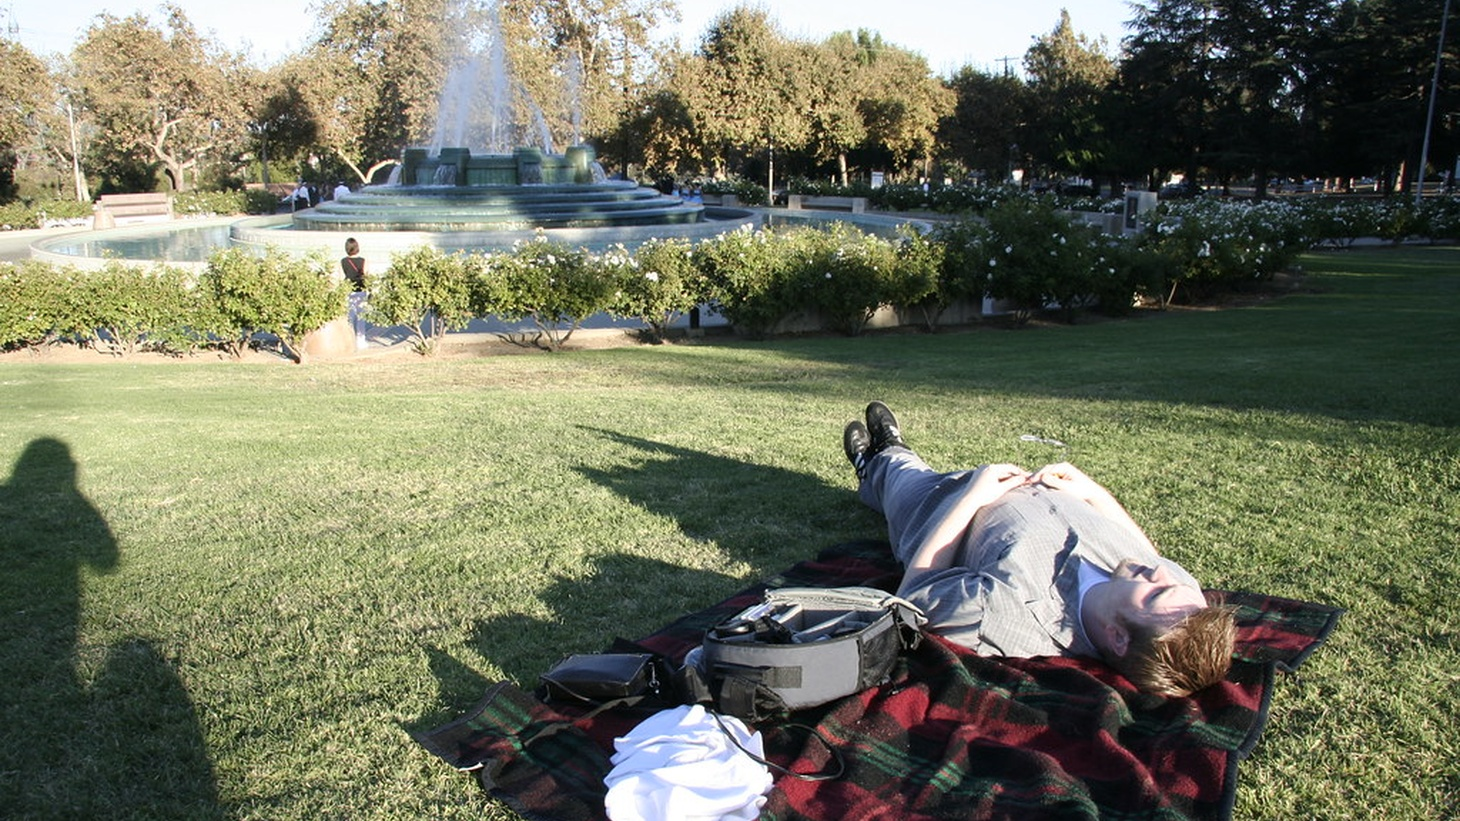 Part of LA County's new sustainability plan includes making parks more accessible.